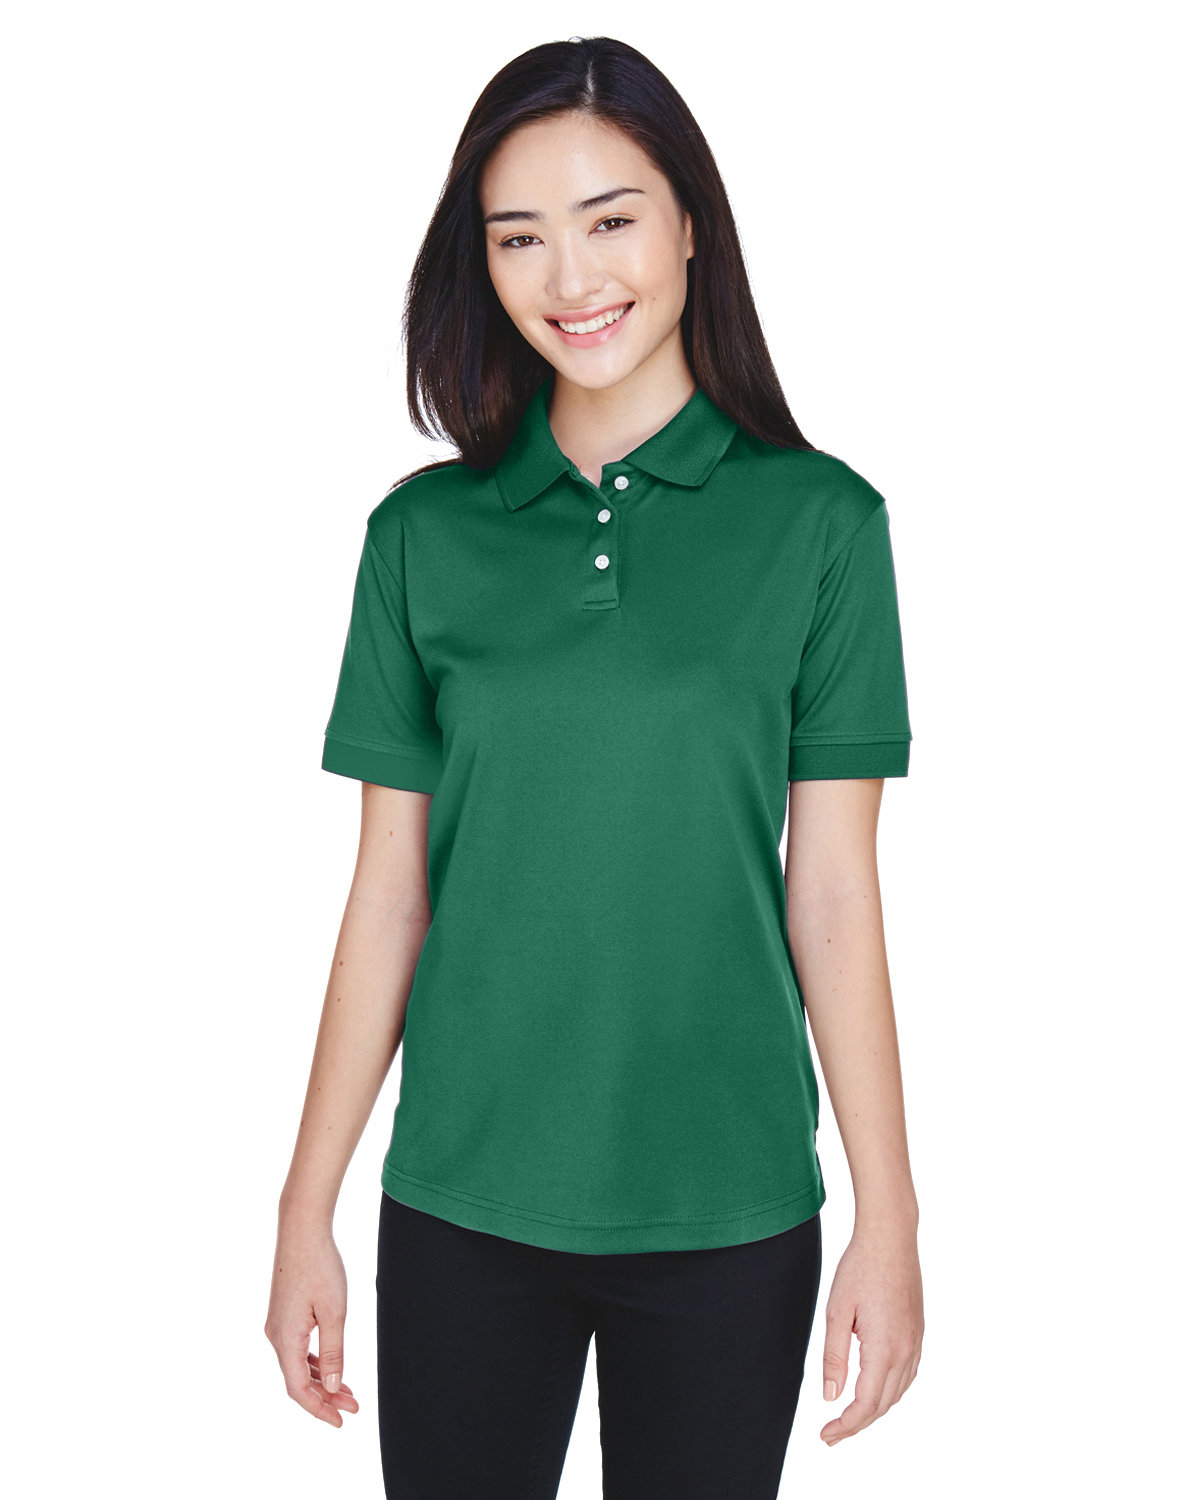 UltraClub Ladies' Platinum Performance Piqué Polo with TempControl Technology FOREST GREEN